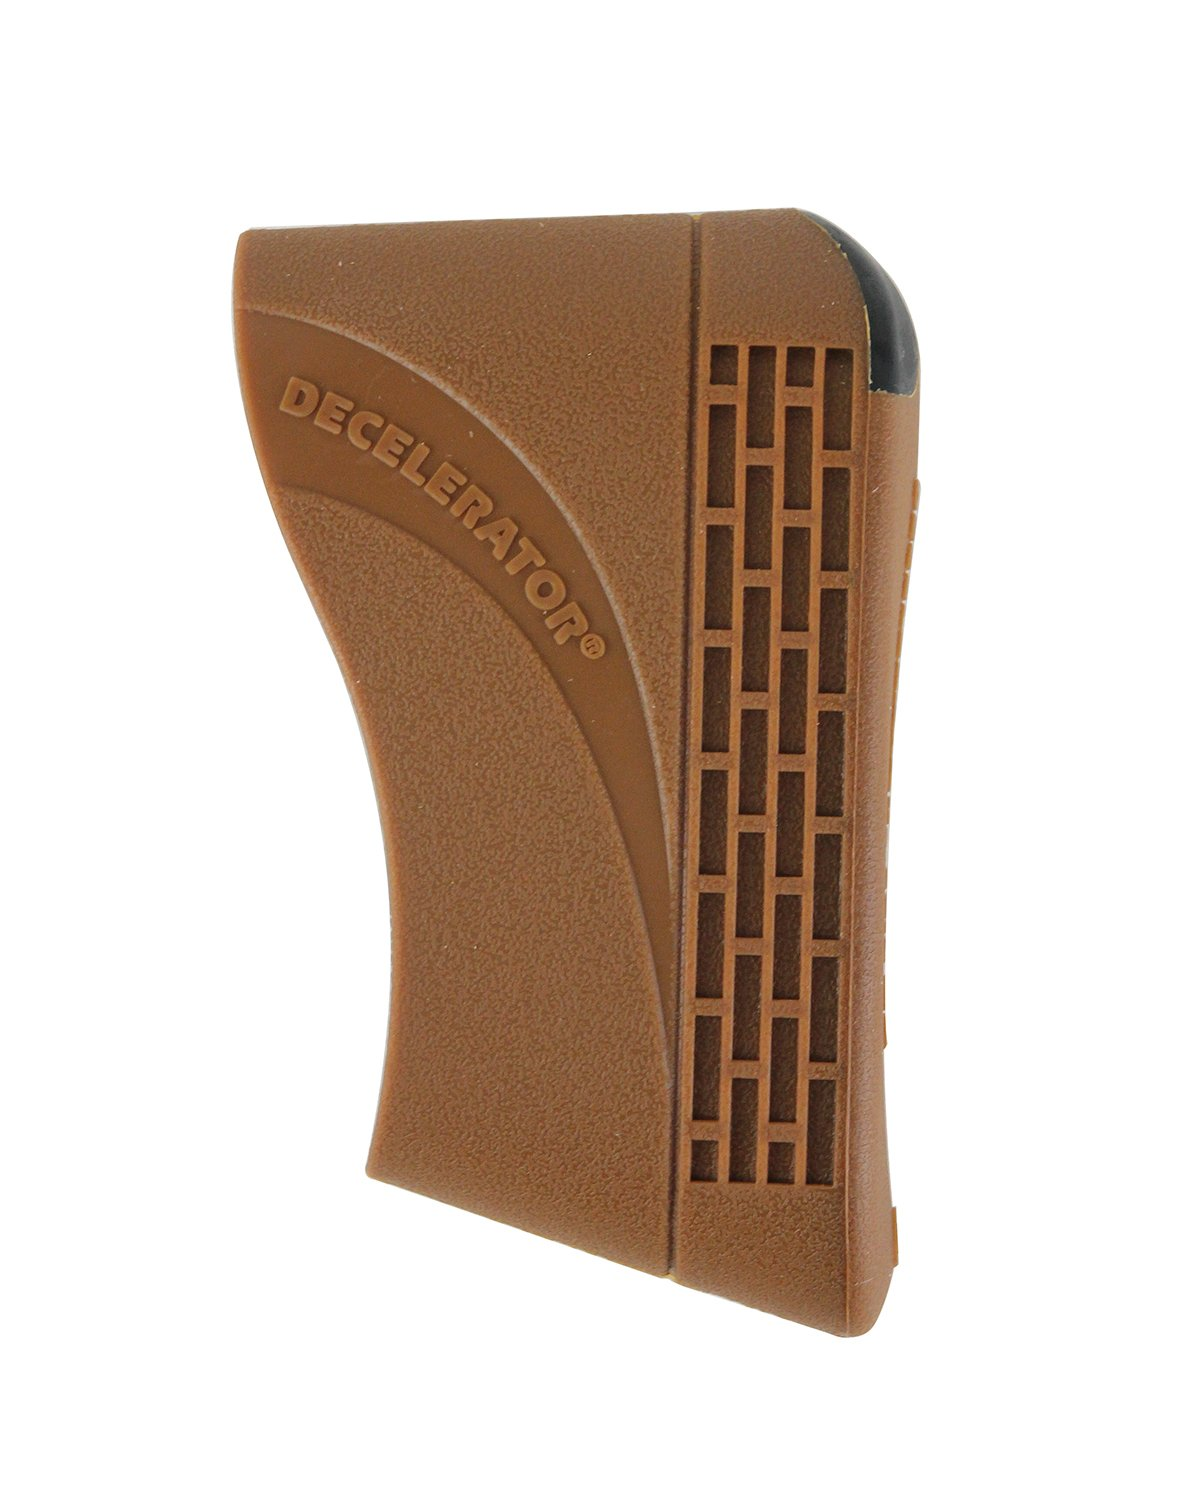 Pachmayr 04416 Decelerator Recoil Pads, Slip-On Recoil Pad, (Large, Brown) by Pachmayr